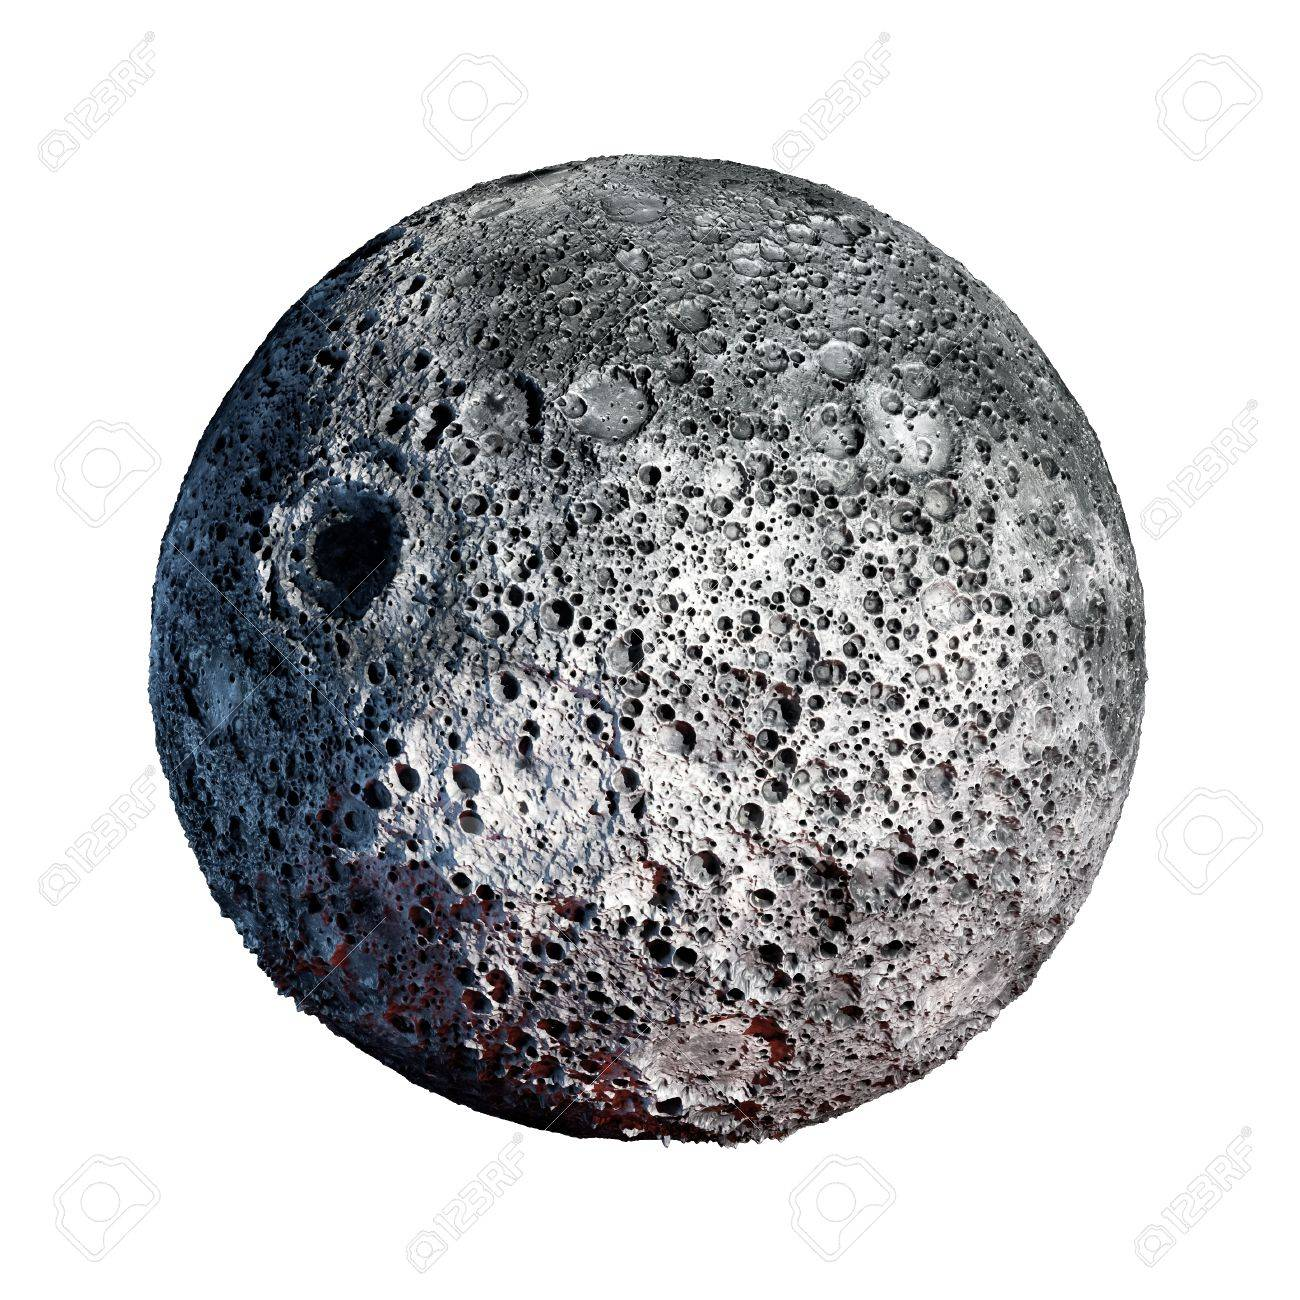 Asteroid Meteorit Stone Cosmic Crater Planet Isolated Stock Photo